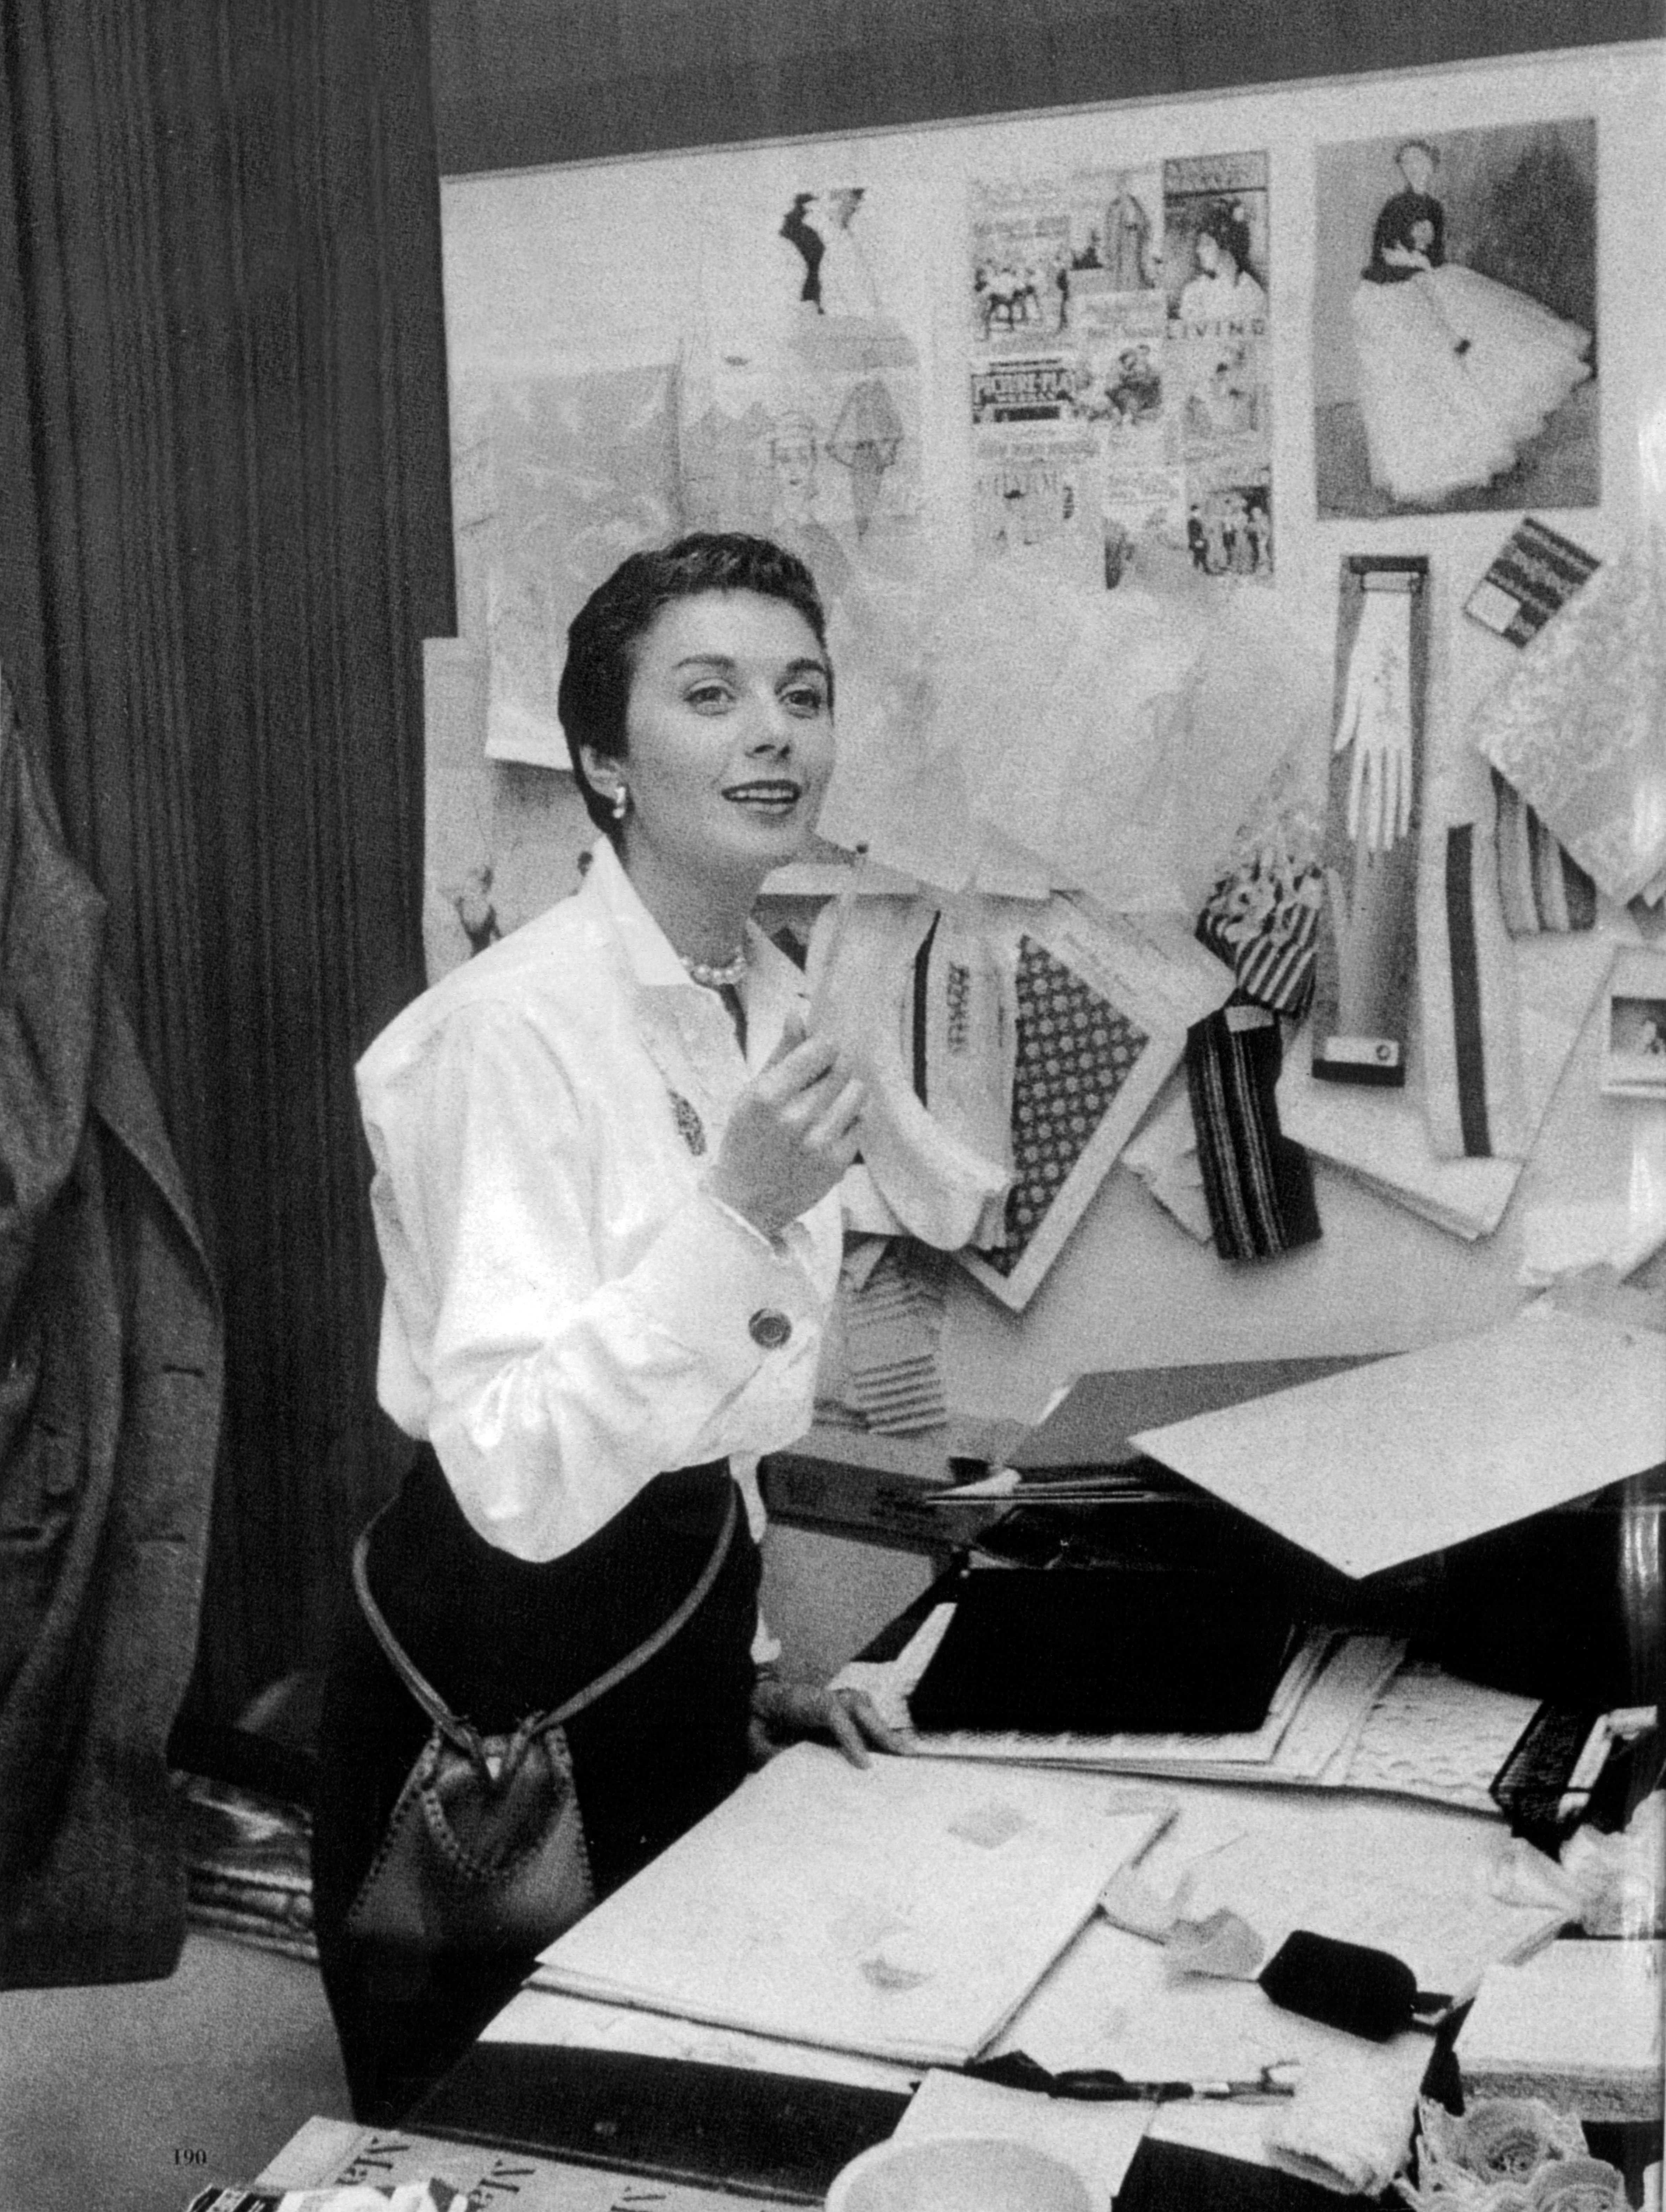 Anne Klein: The Legendary Designer Who Changed The Way American Women Dressed